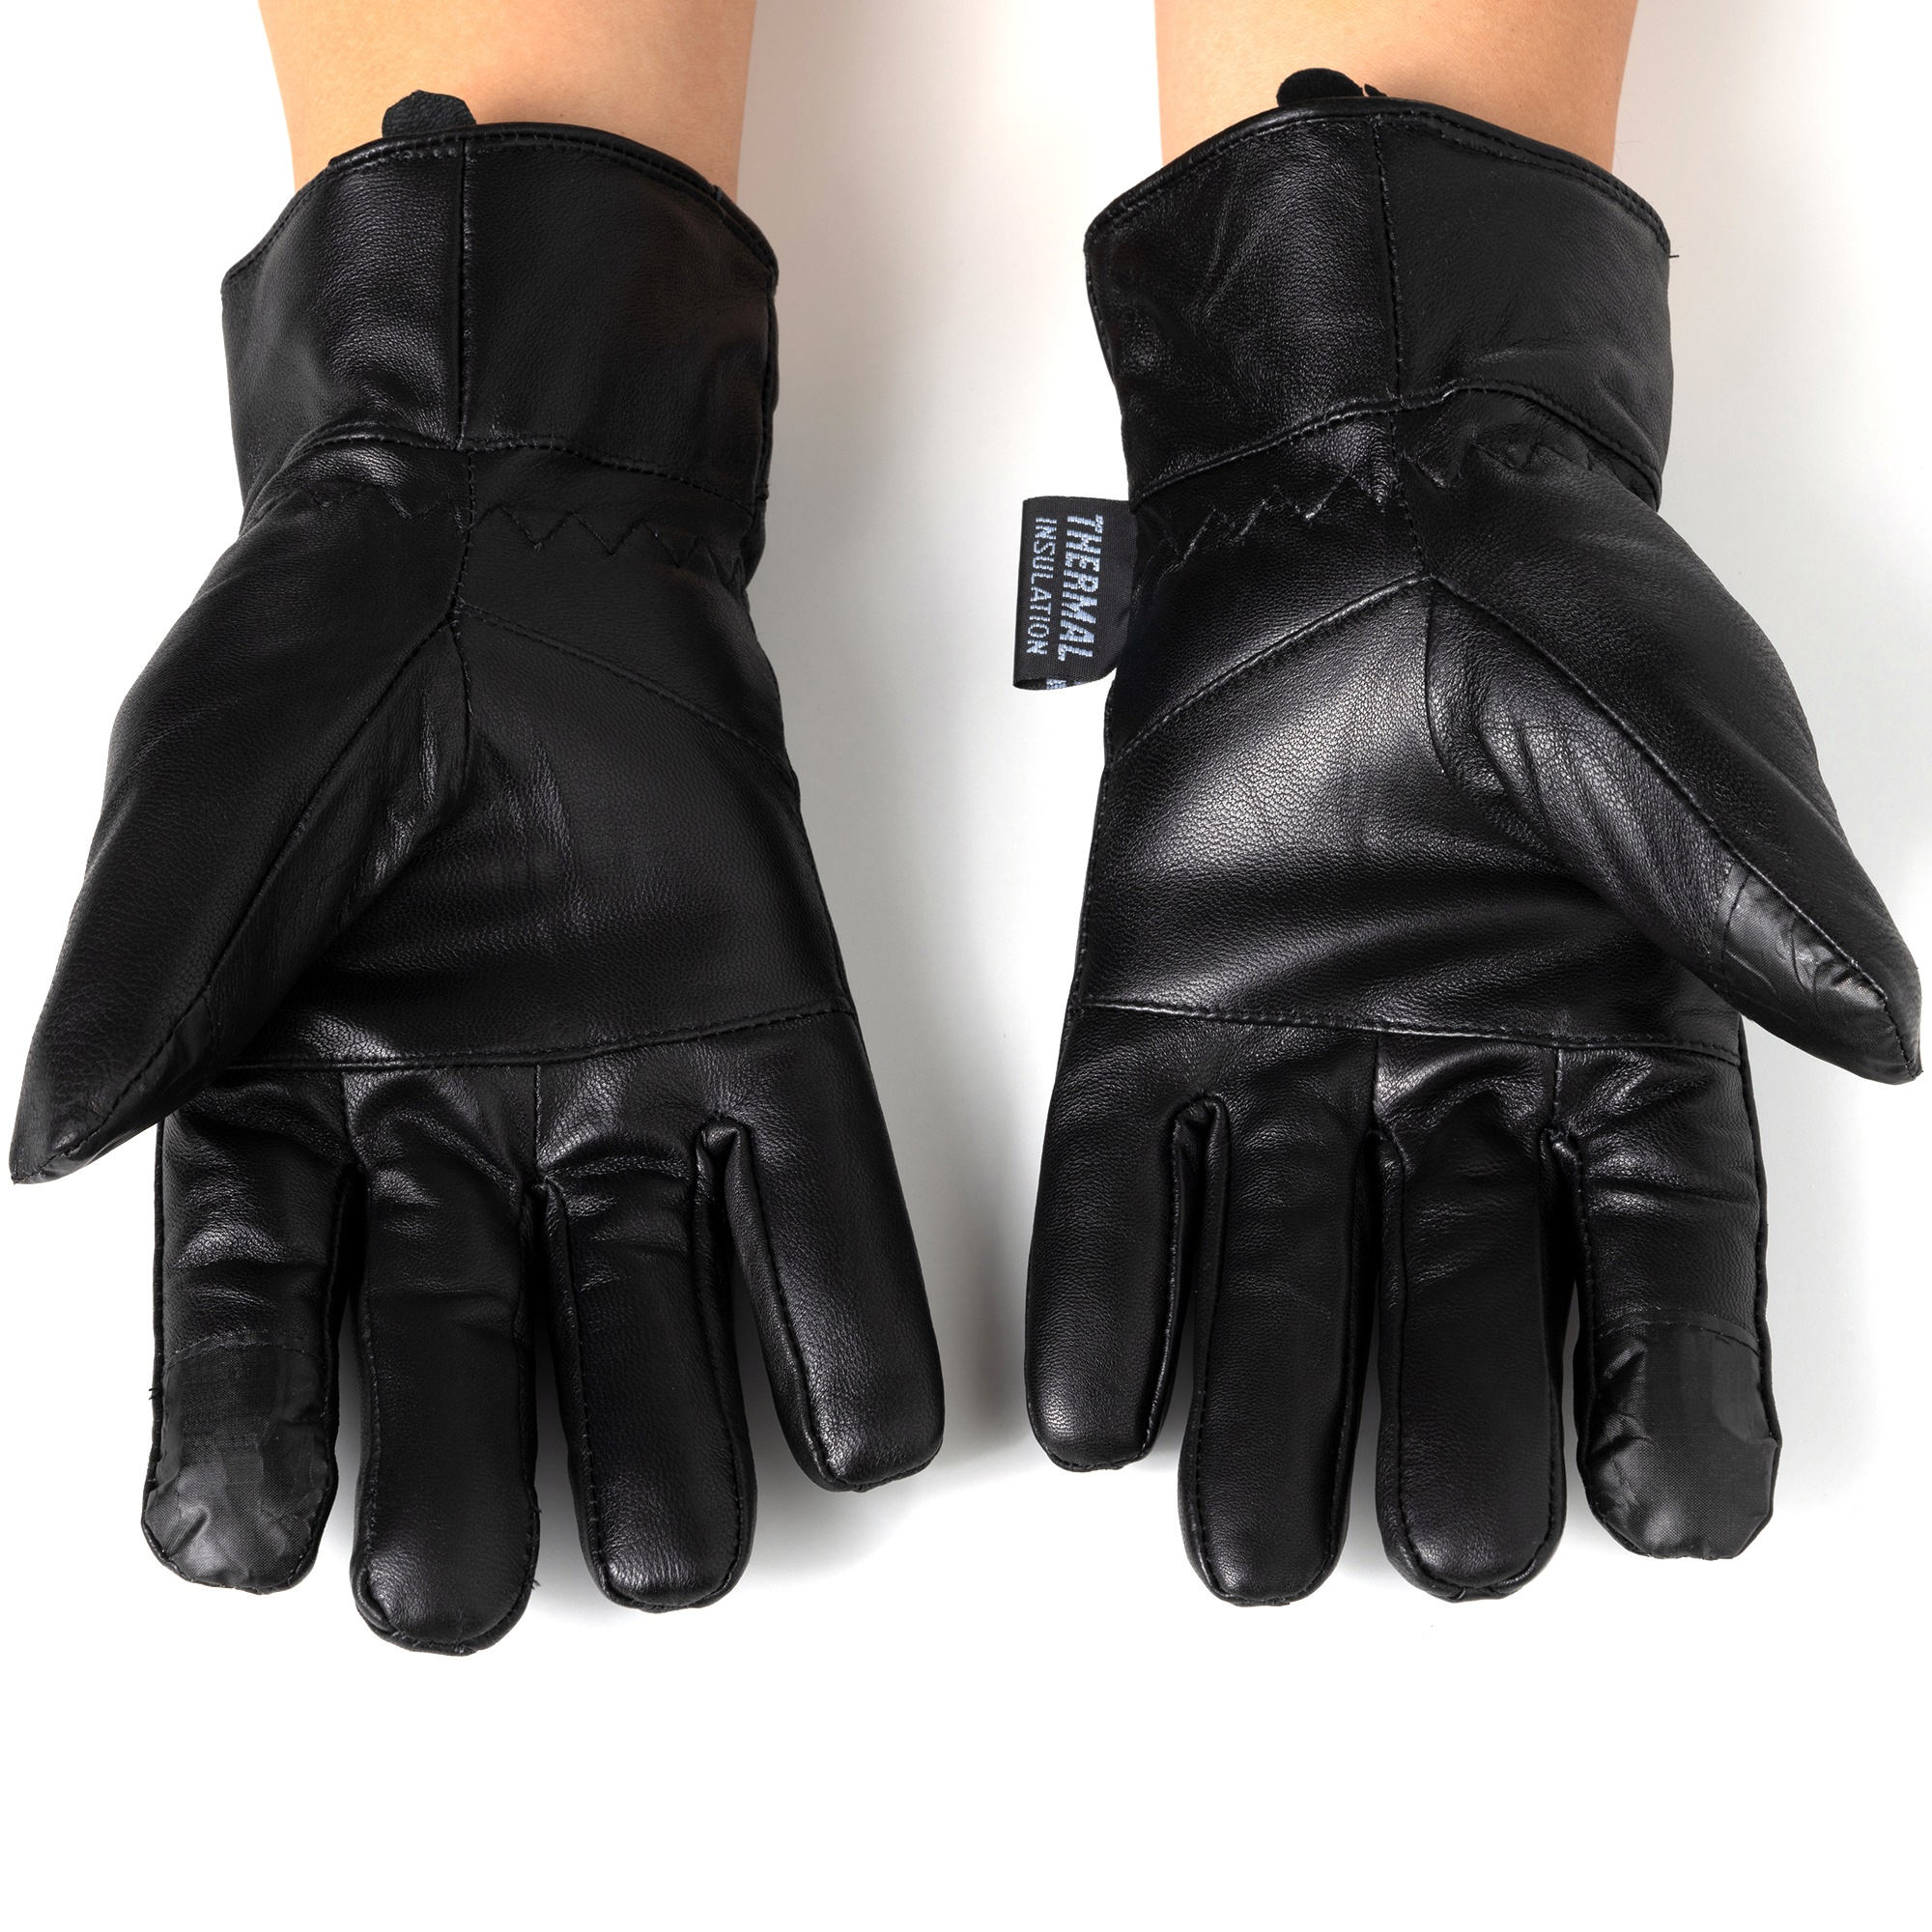 Alpine-Swiss-Mens-Touch-Screen-Gloves-Leather-Thermal-Lined-Phone-Texting-Gloves